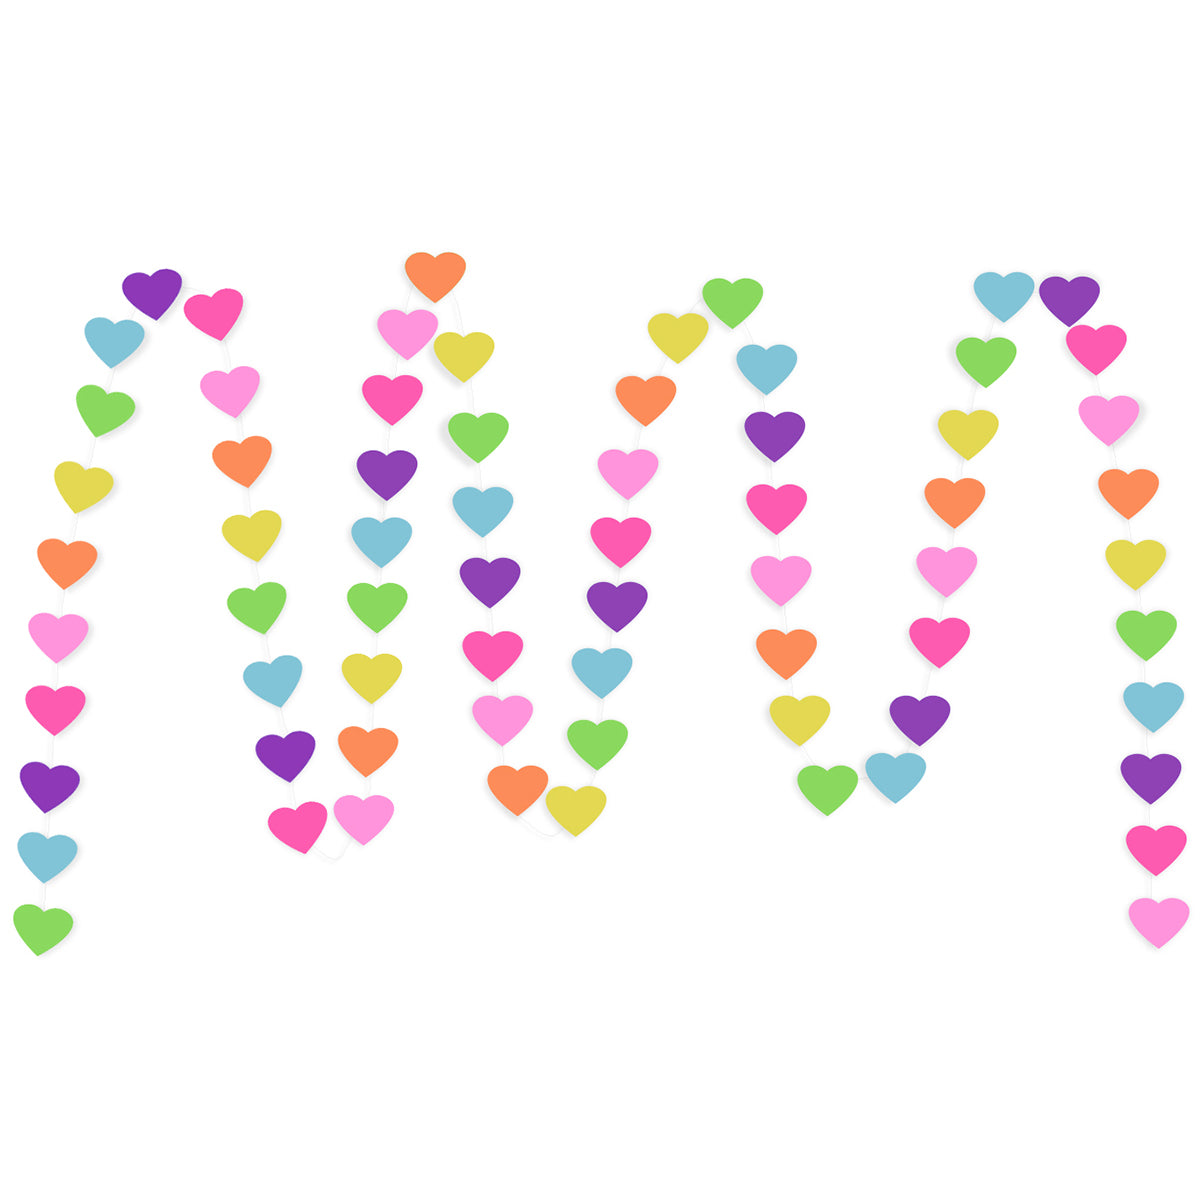 A string of Colorful Hearts Paper Garland show with a white background.